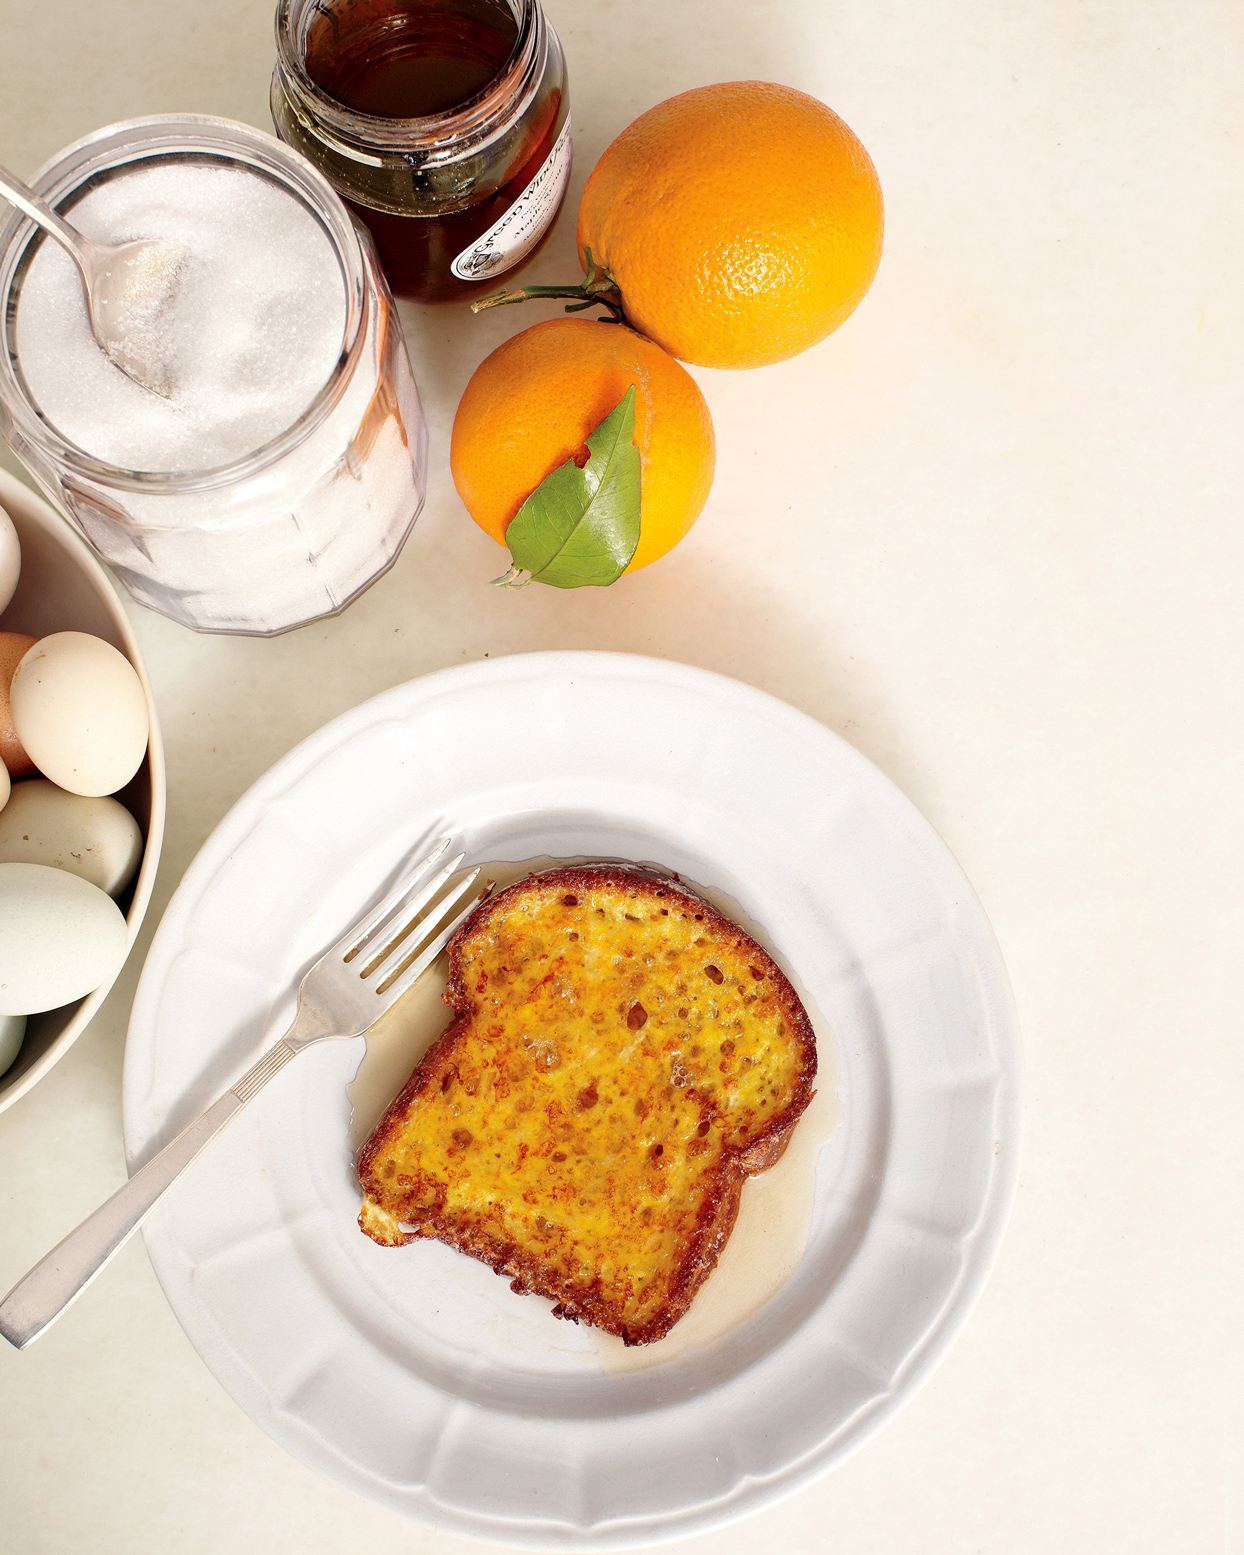 plated french toast and oranges